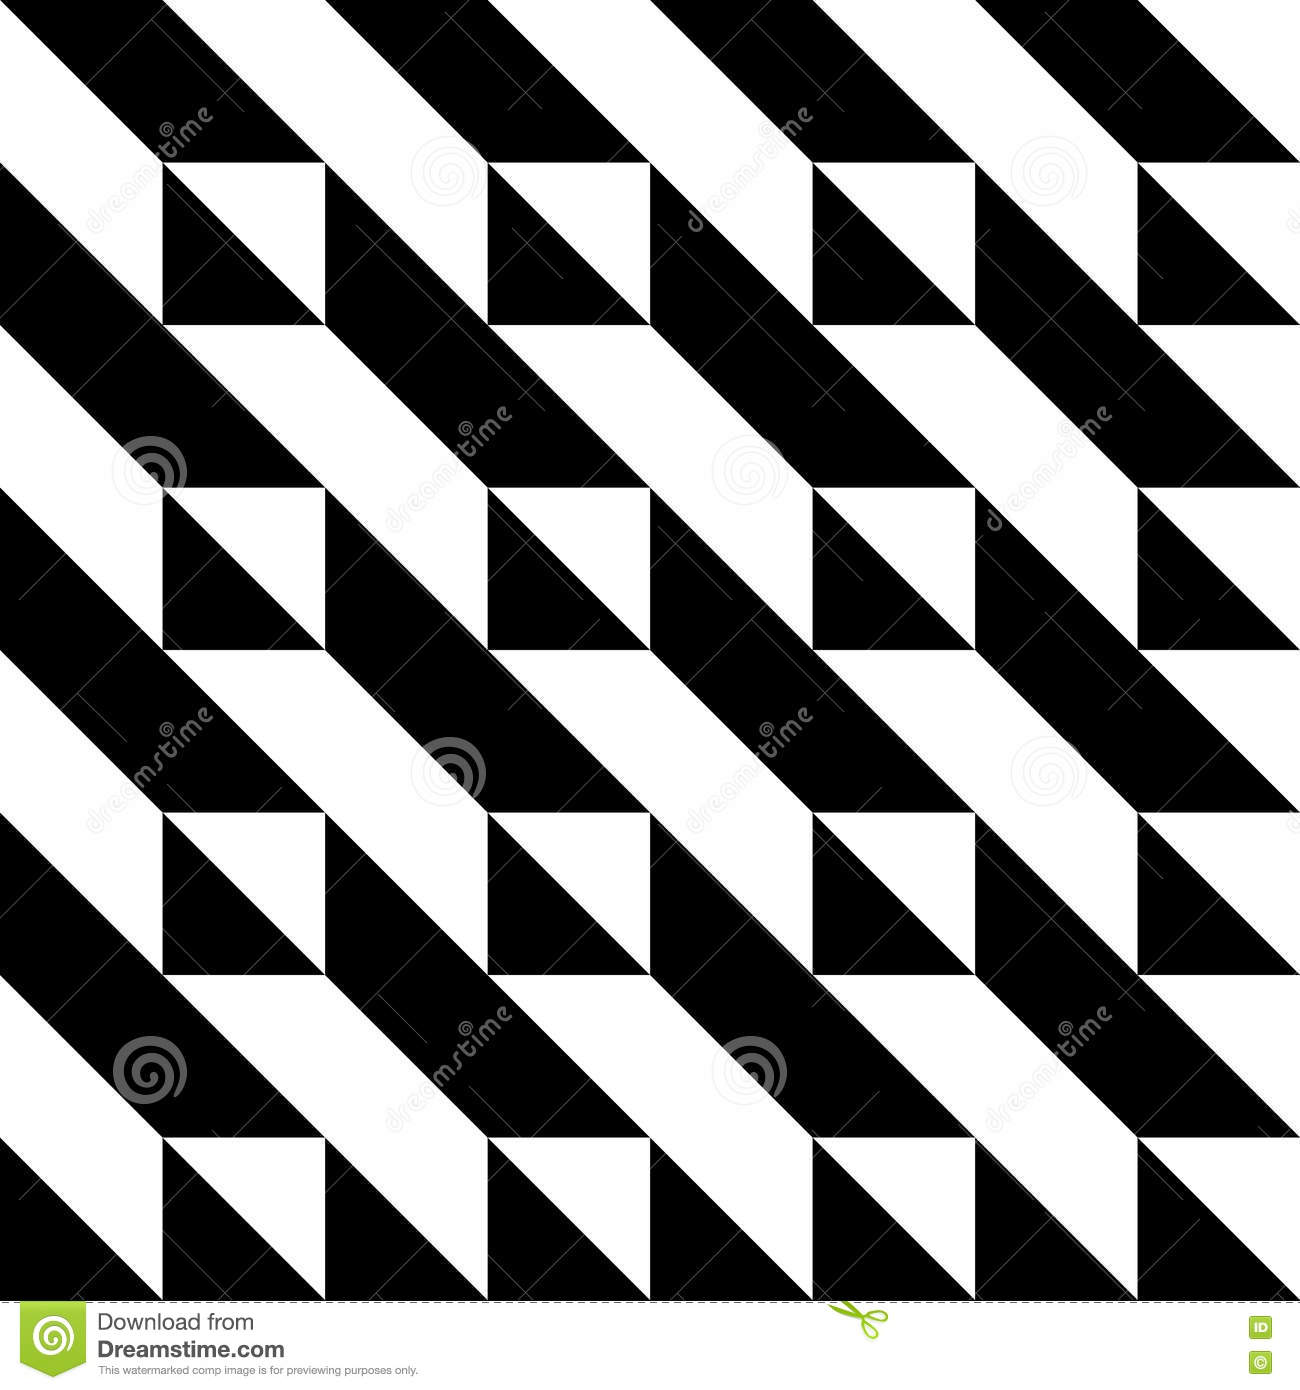 Black And White Triangle Pattern Stock Vector - Image ...